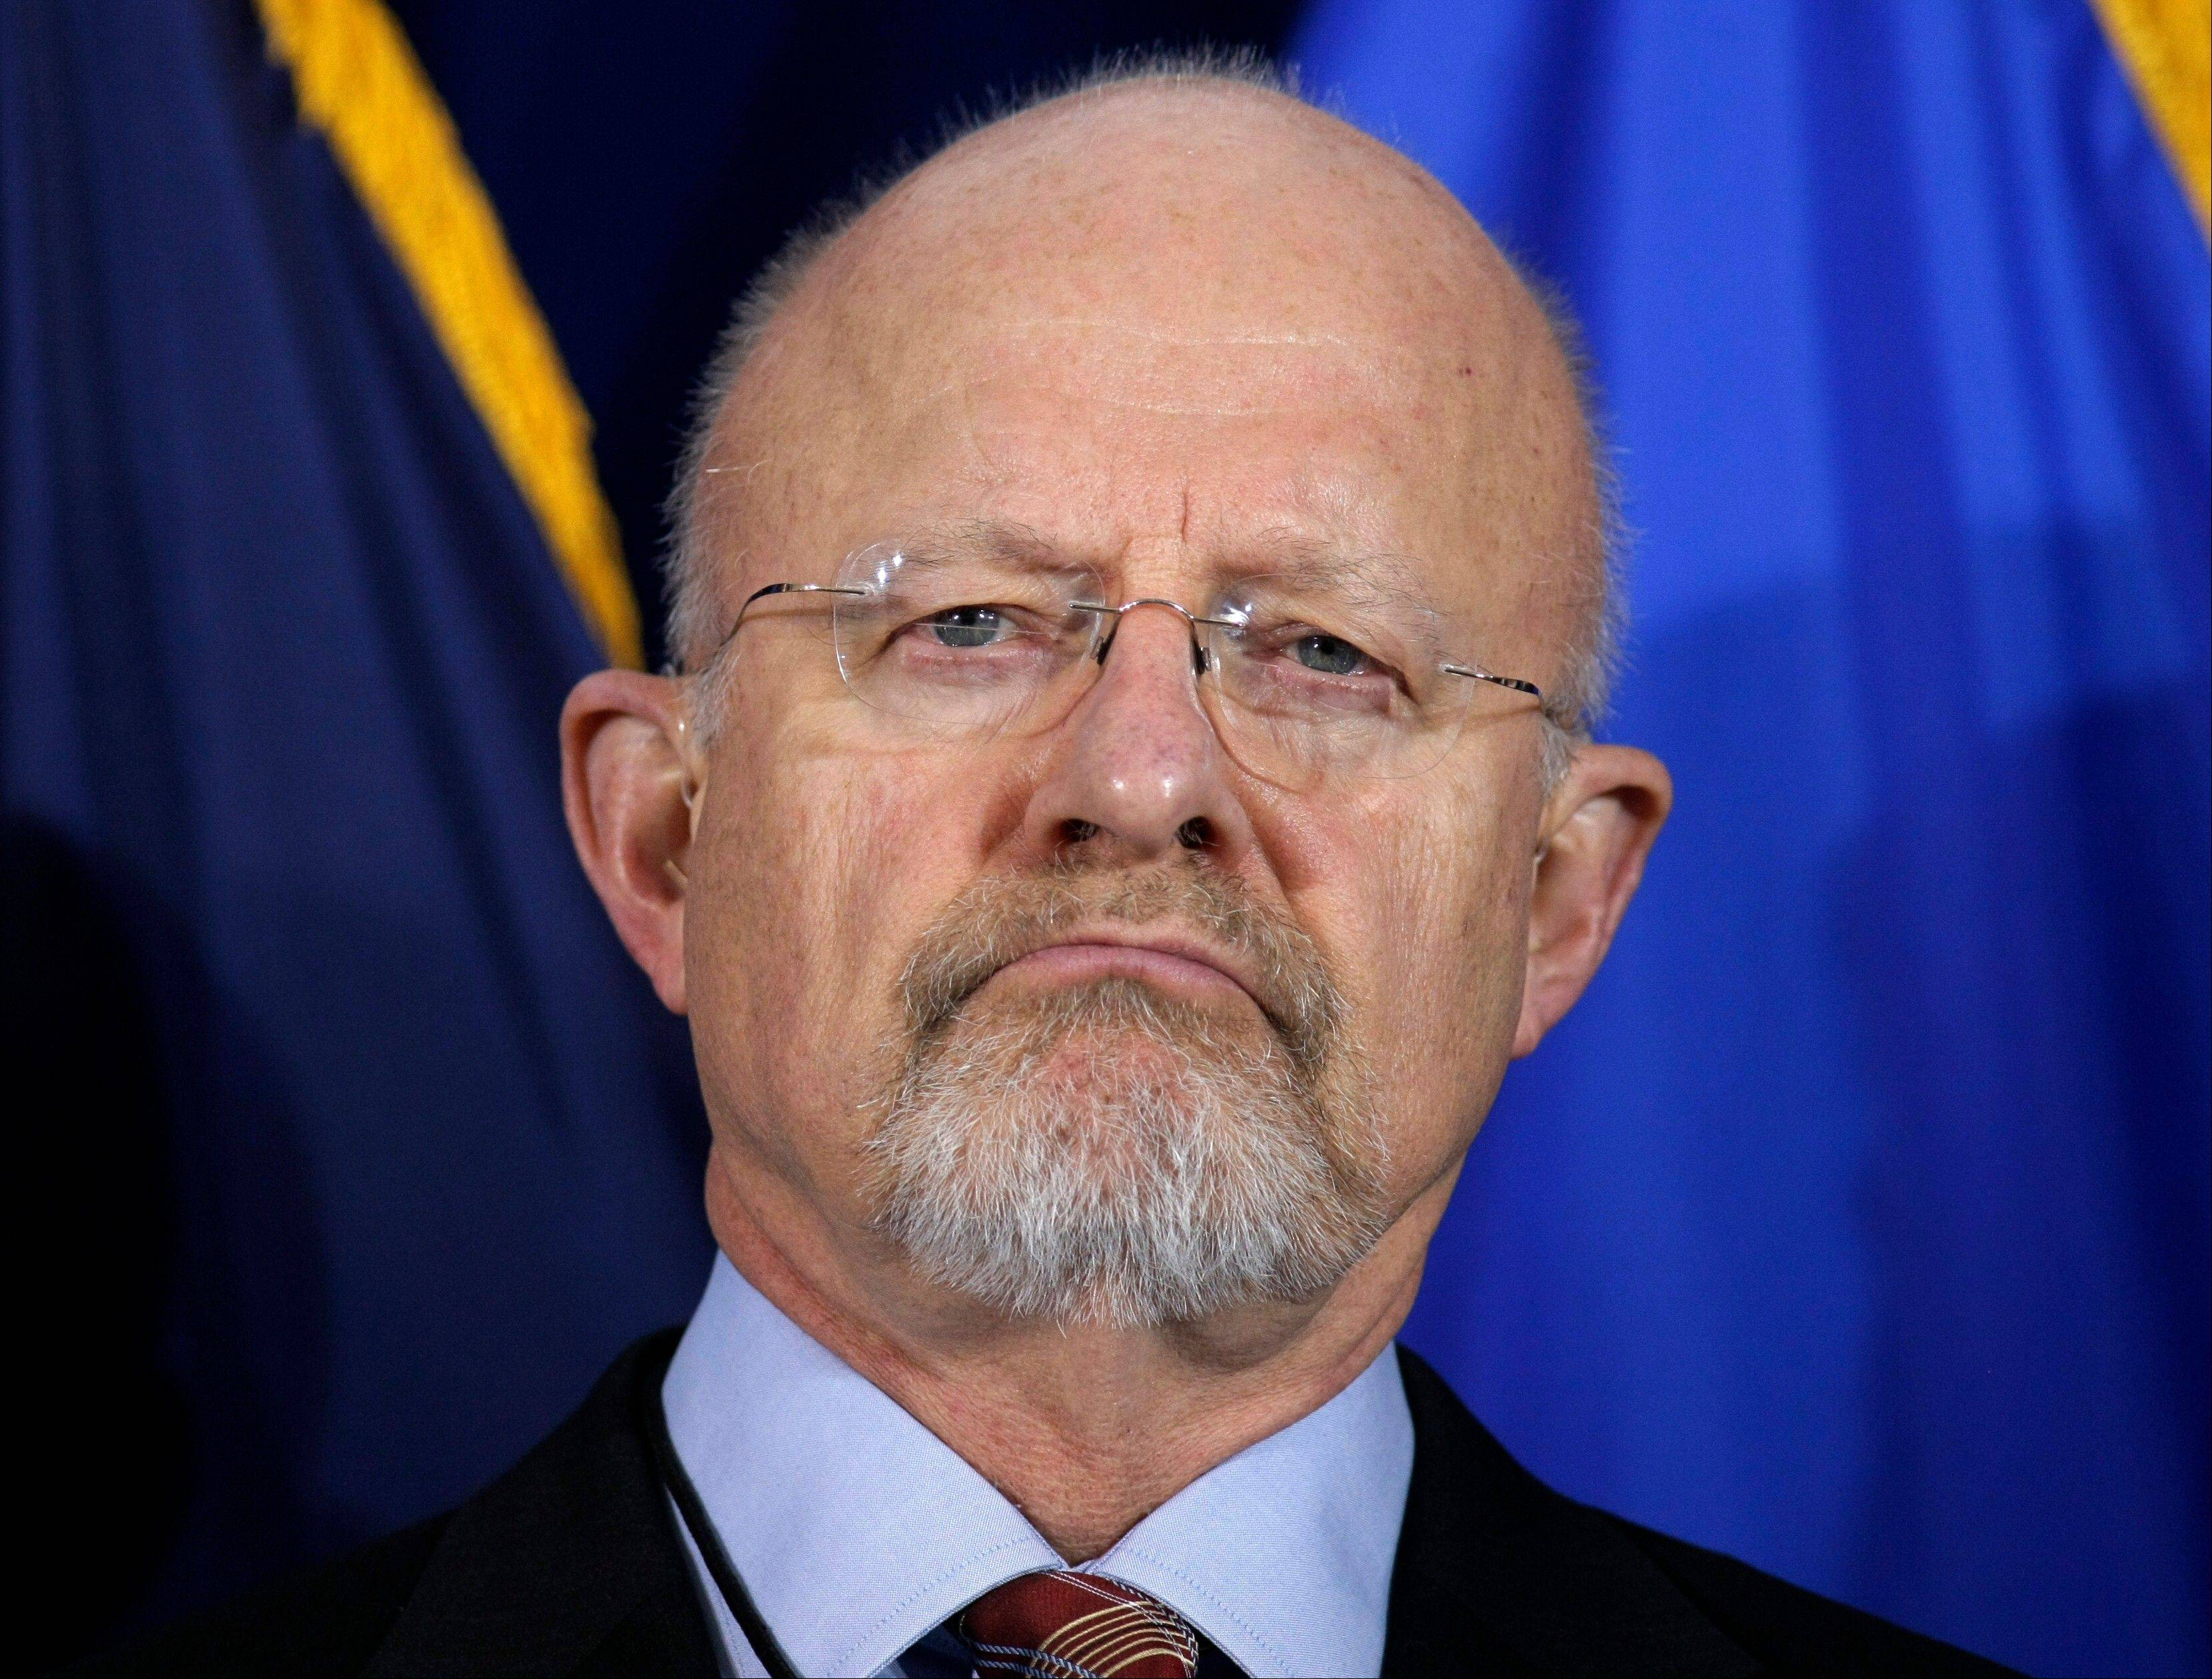 Director of National Intelligence James Clapper called the disclosure of an Internet surveillance program �reprehensible� Thursday and said it risks Americans� security.